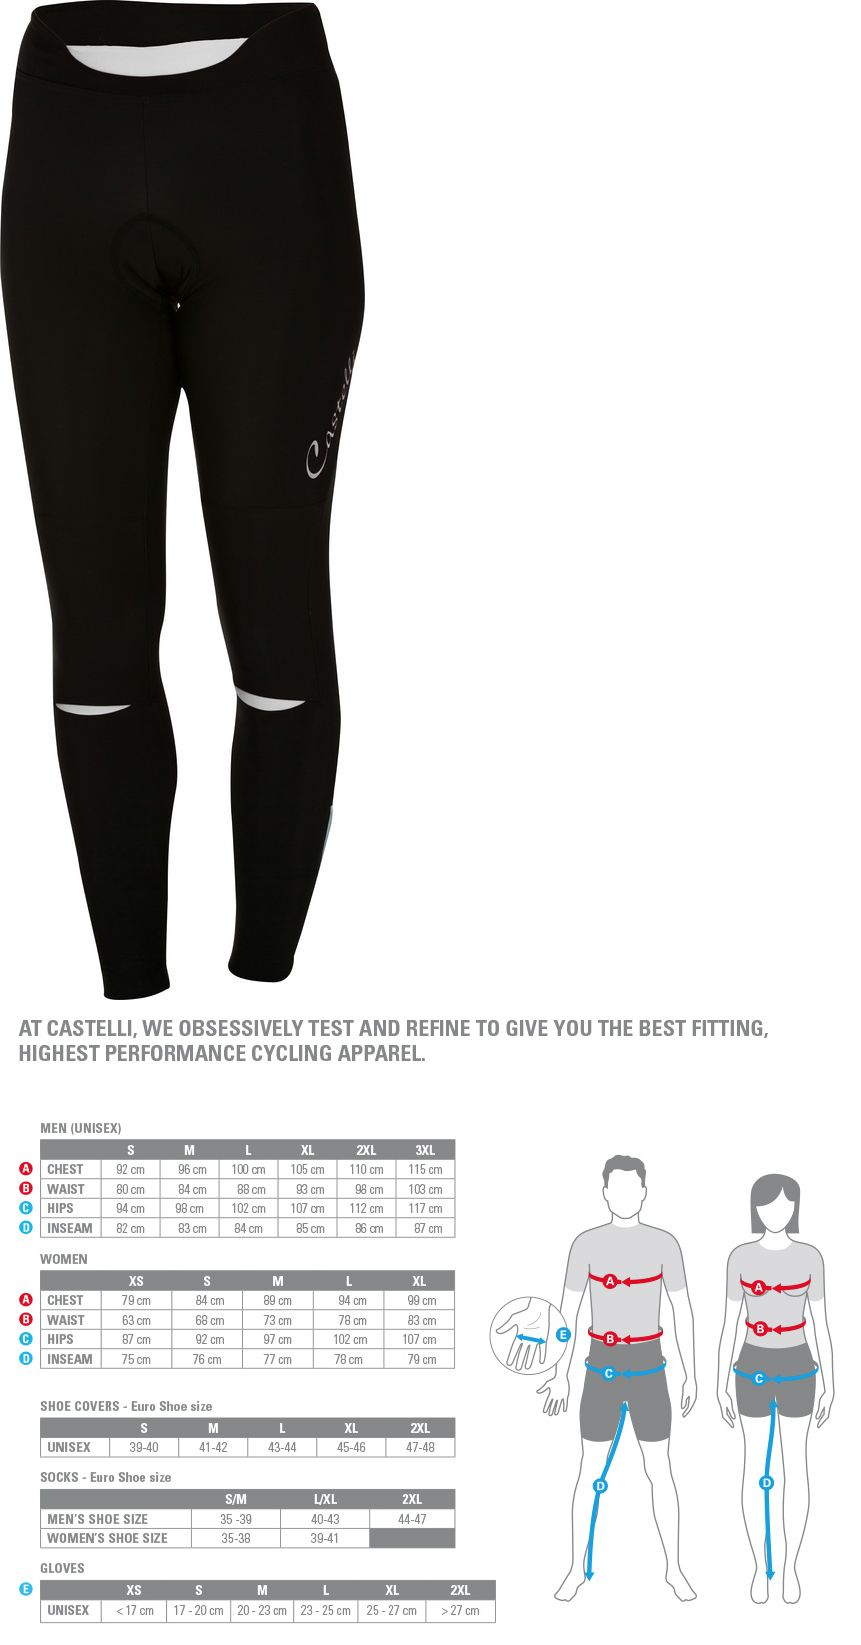 Tights and Pants 177854  Castelli Women S Chic Cycling Tight - 2018 -  BUY ae4fa184c